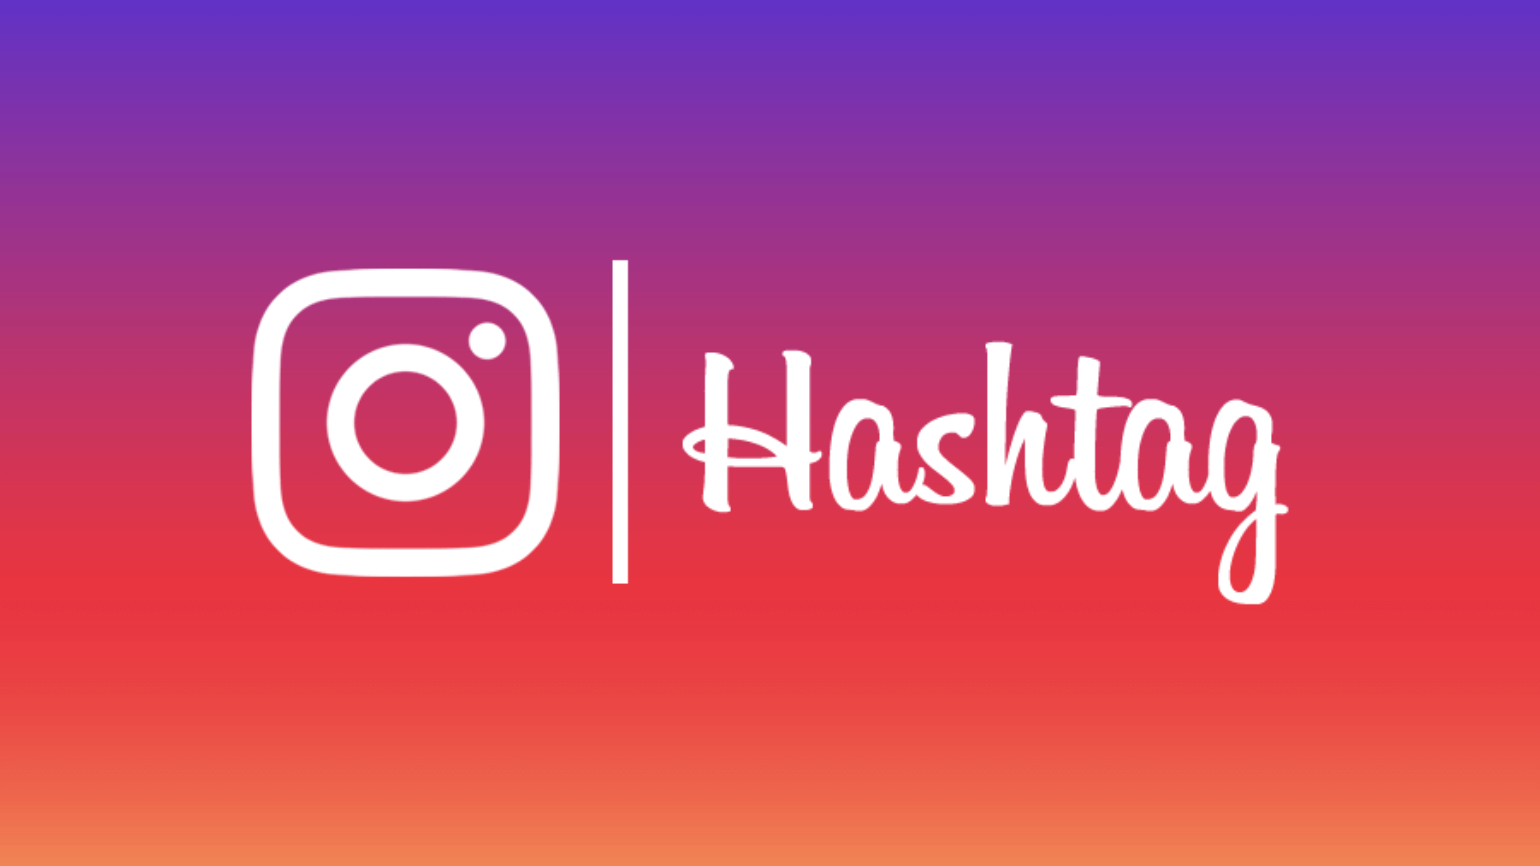 Get More Reach With the Right Instagram Hashtags